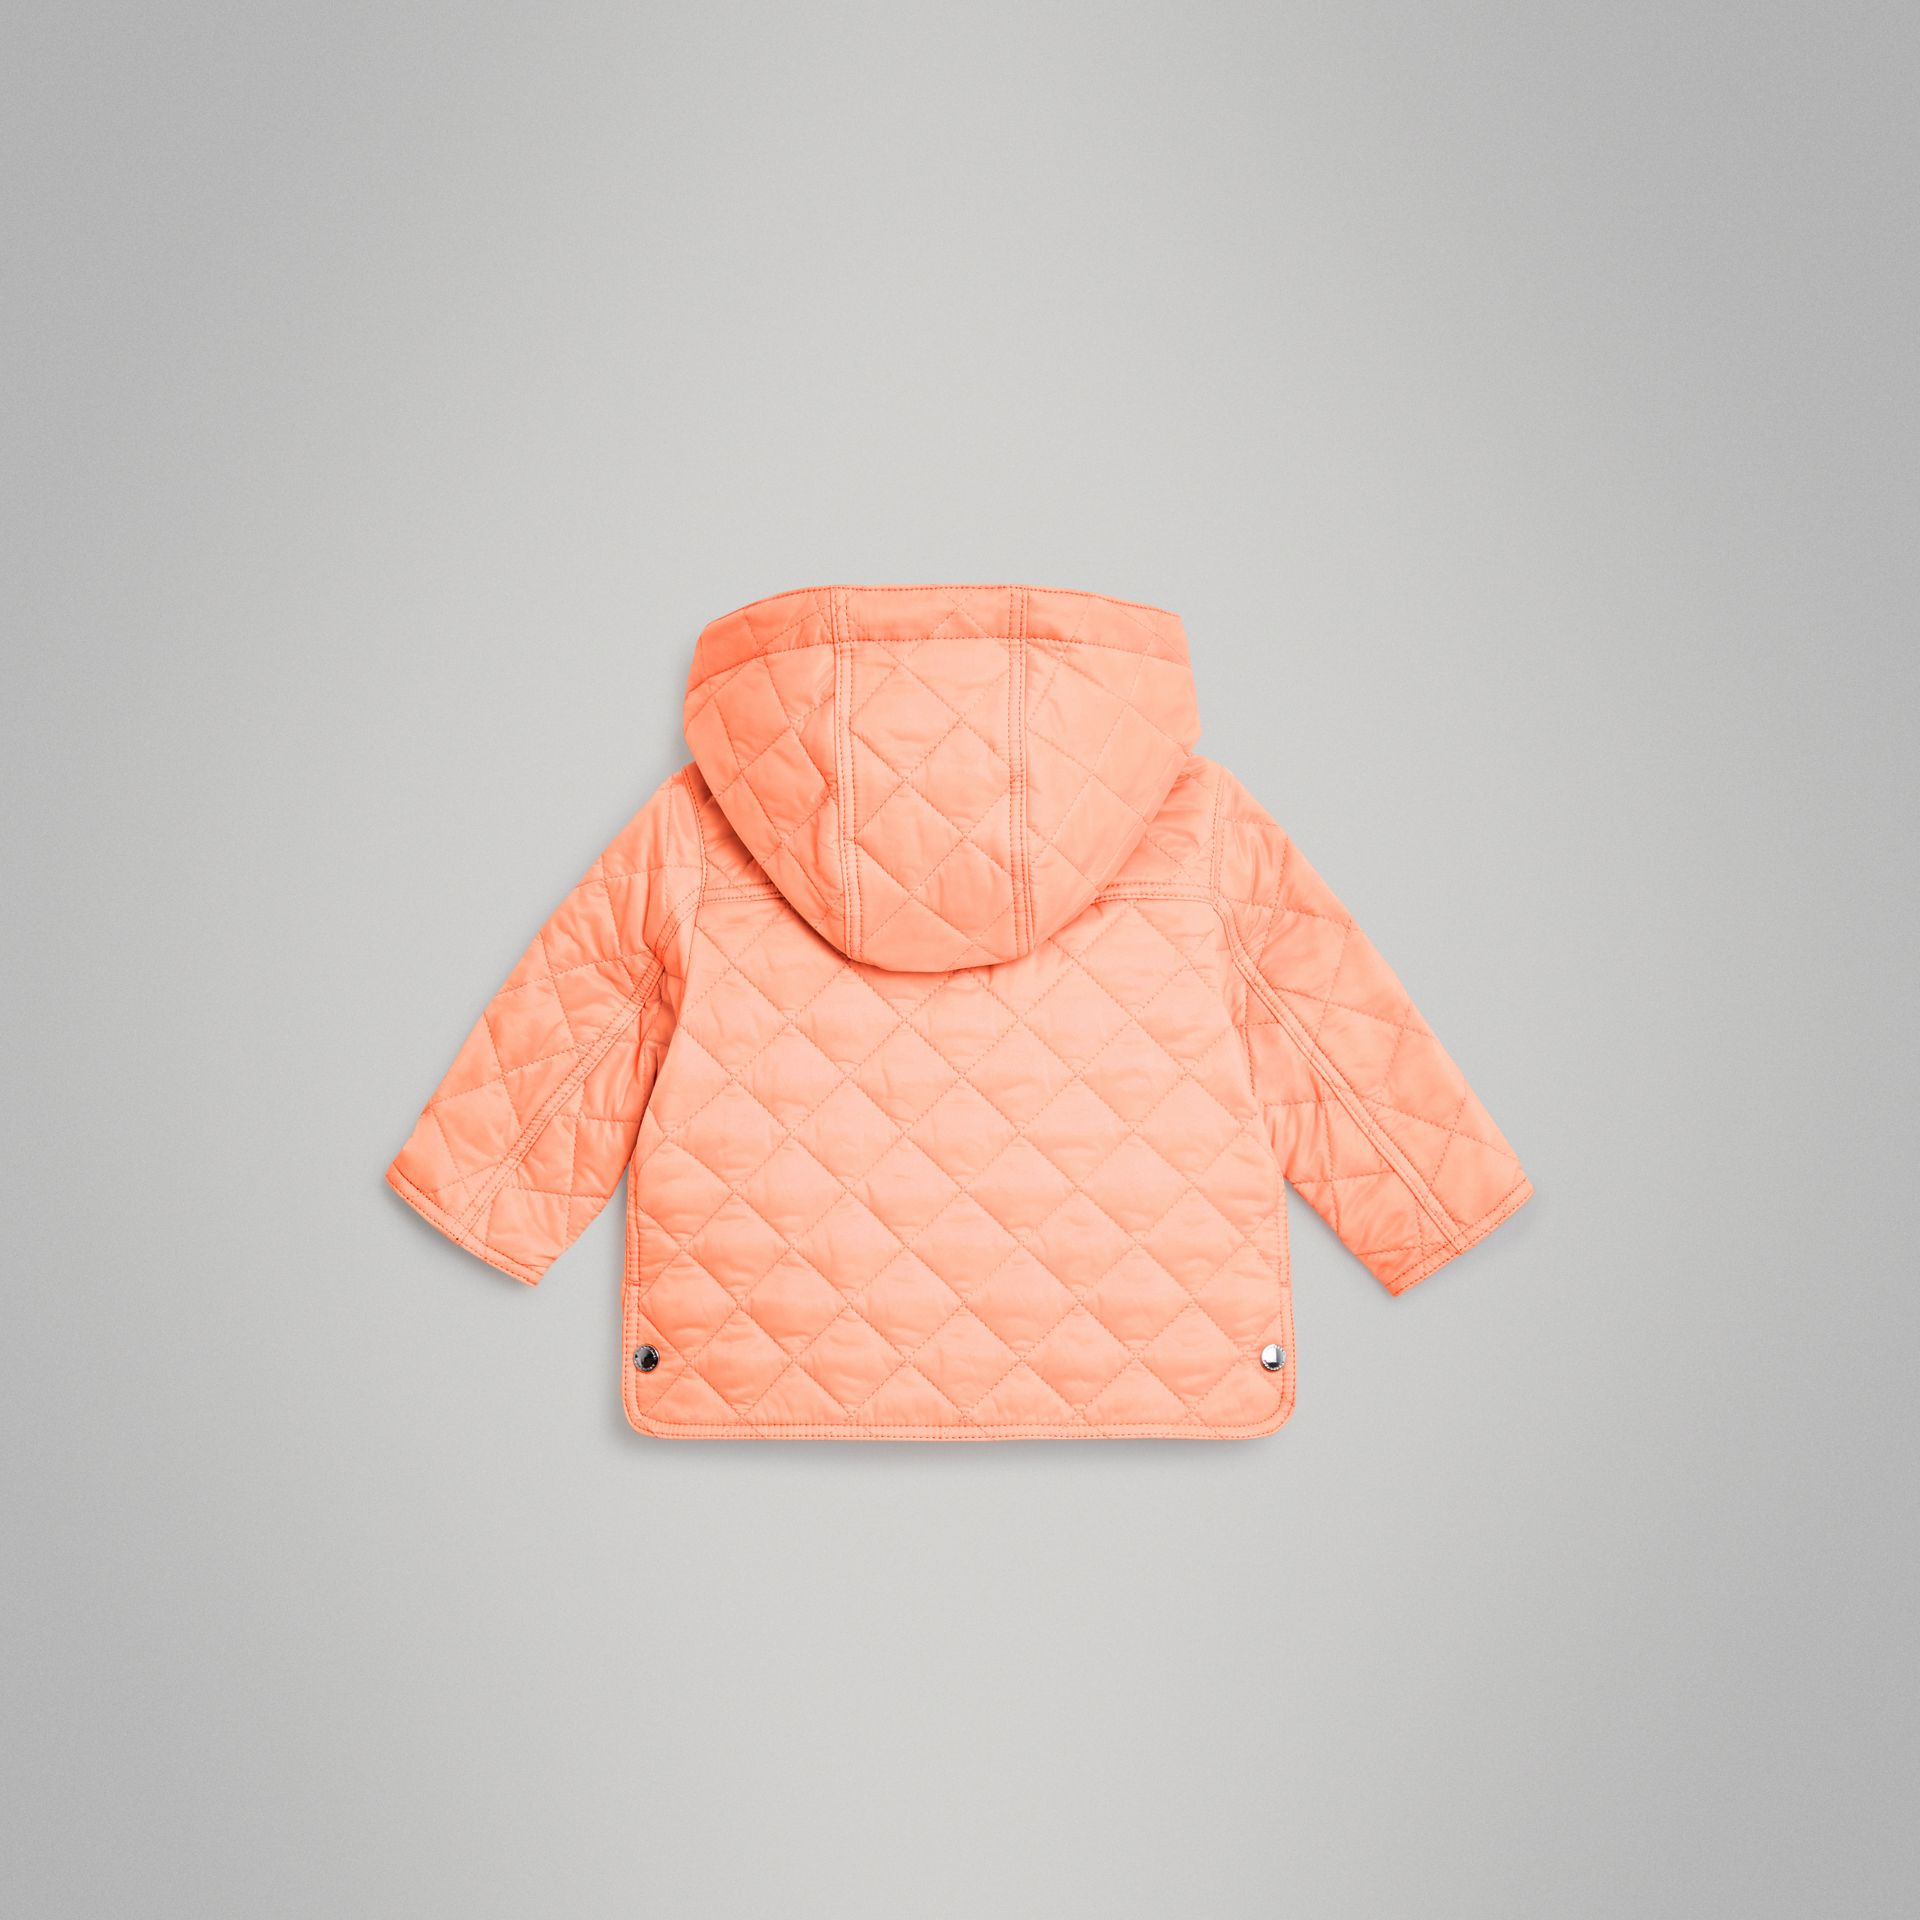 Diamond Quilted Hooded Jacket in Apricot Pink - Children | Burberry - gallery image 3